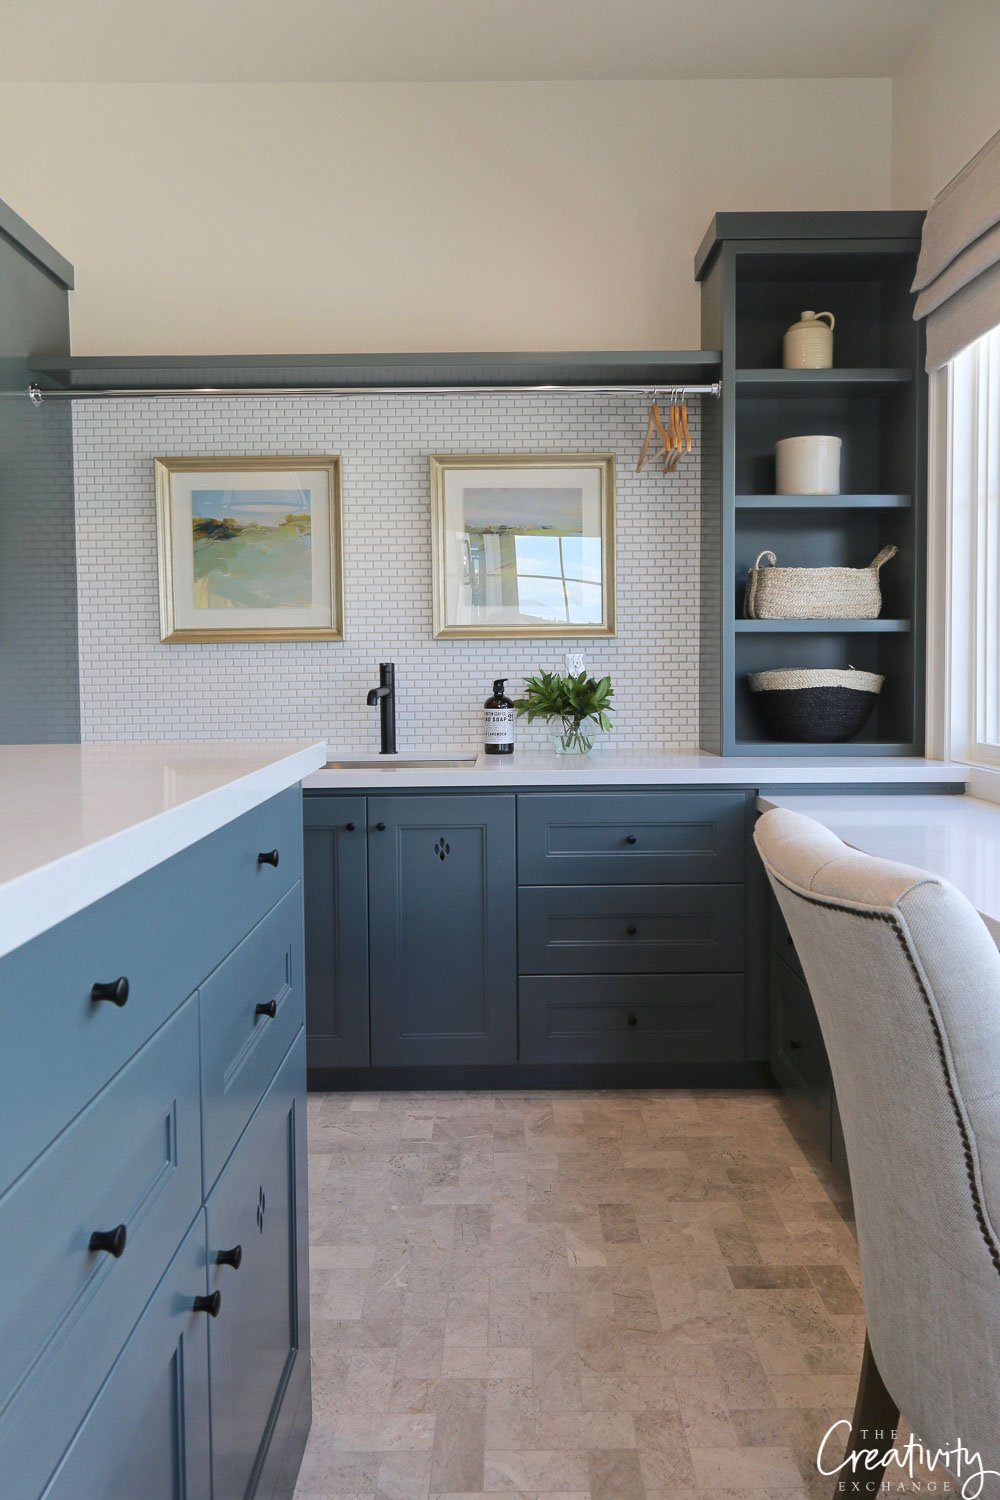 Cabinet paint color is Benjamin Moore Knoxville Gray